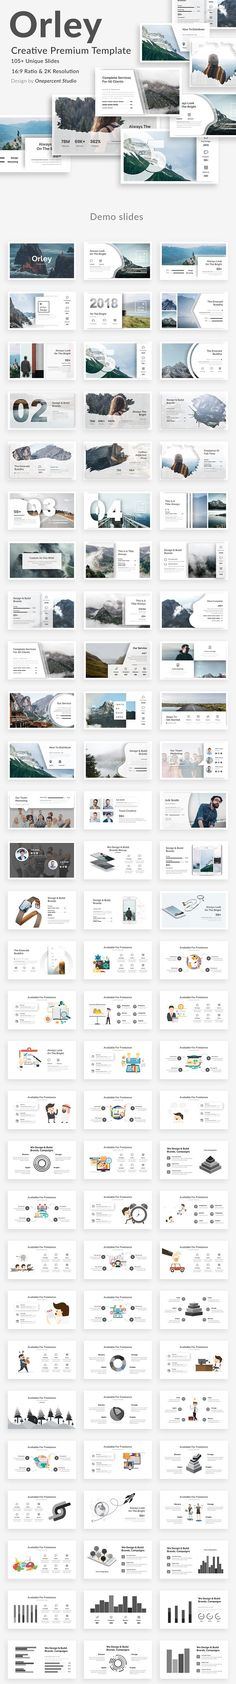 Orley Creative Powerpoint Template by One Percent Studio on Creative Market - Keynote - Ideas of Keynote - Orley Creative Powerpoint Template by One Percent Studio on Creative Market Web Design, Slide Design, Modern Design, Graphic Design, Layout Design, Presentation Design Template, Design Templates, Presentation Slides, Web Mockup